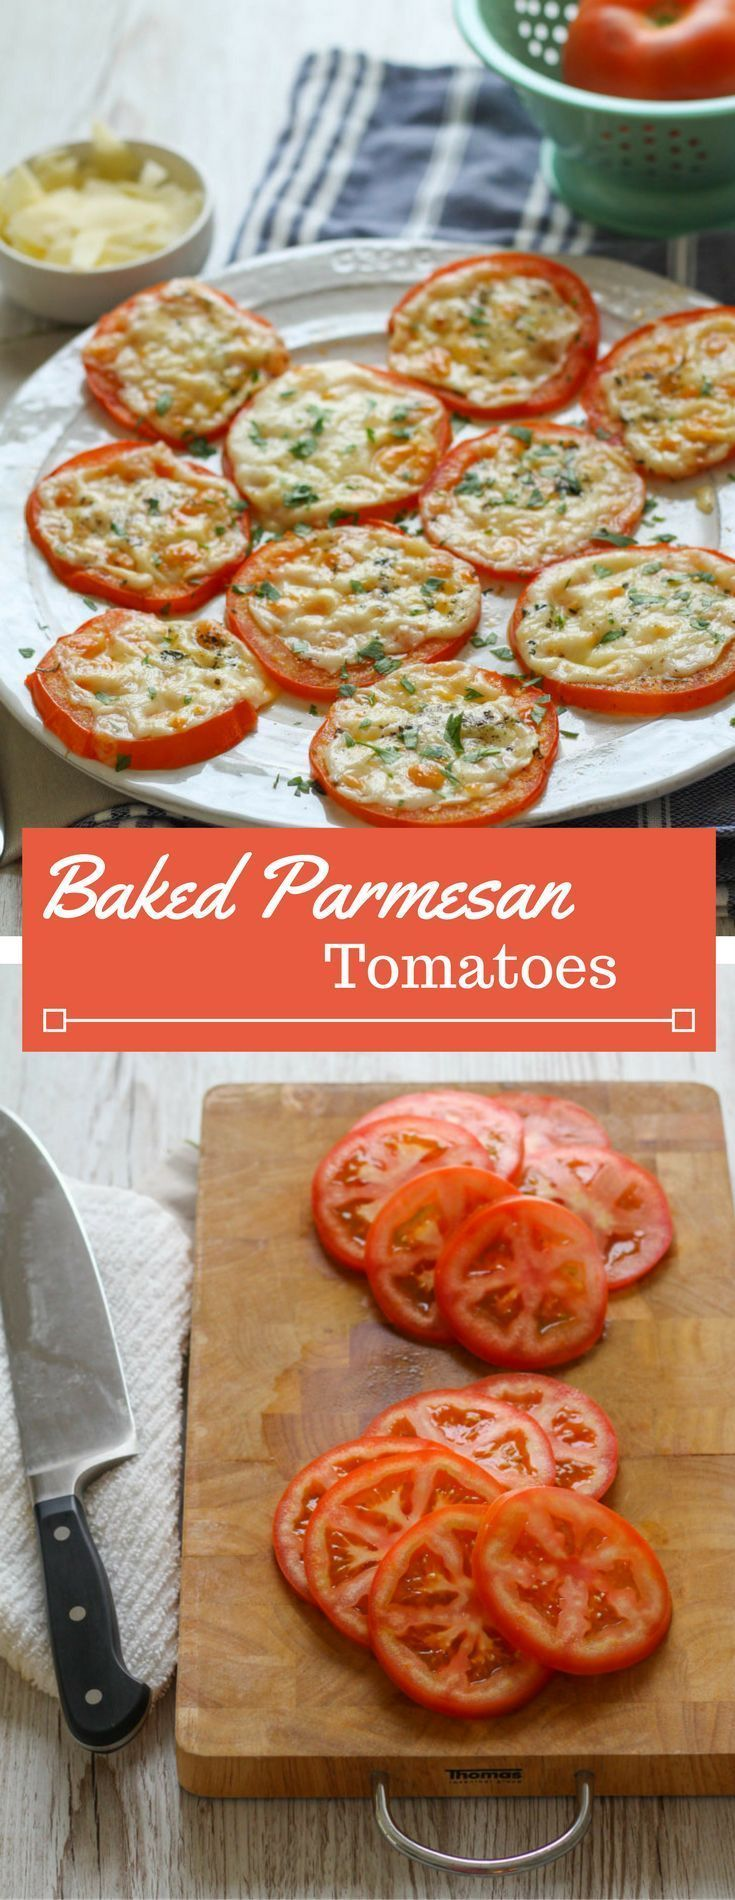 Need a new veggie side to serve with dinner? Try these simple baked tomatoes with a melted parmesan topping!